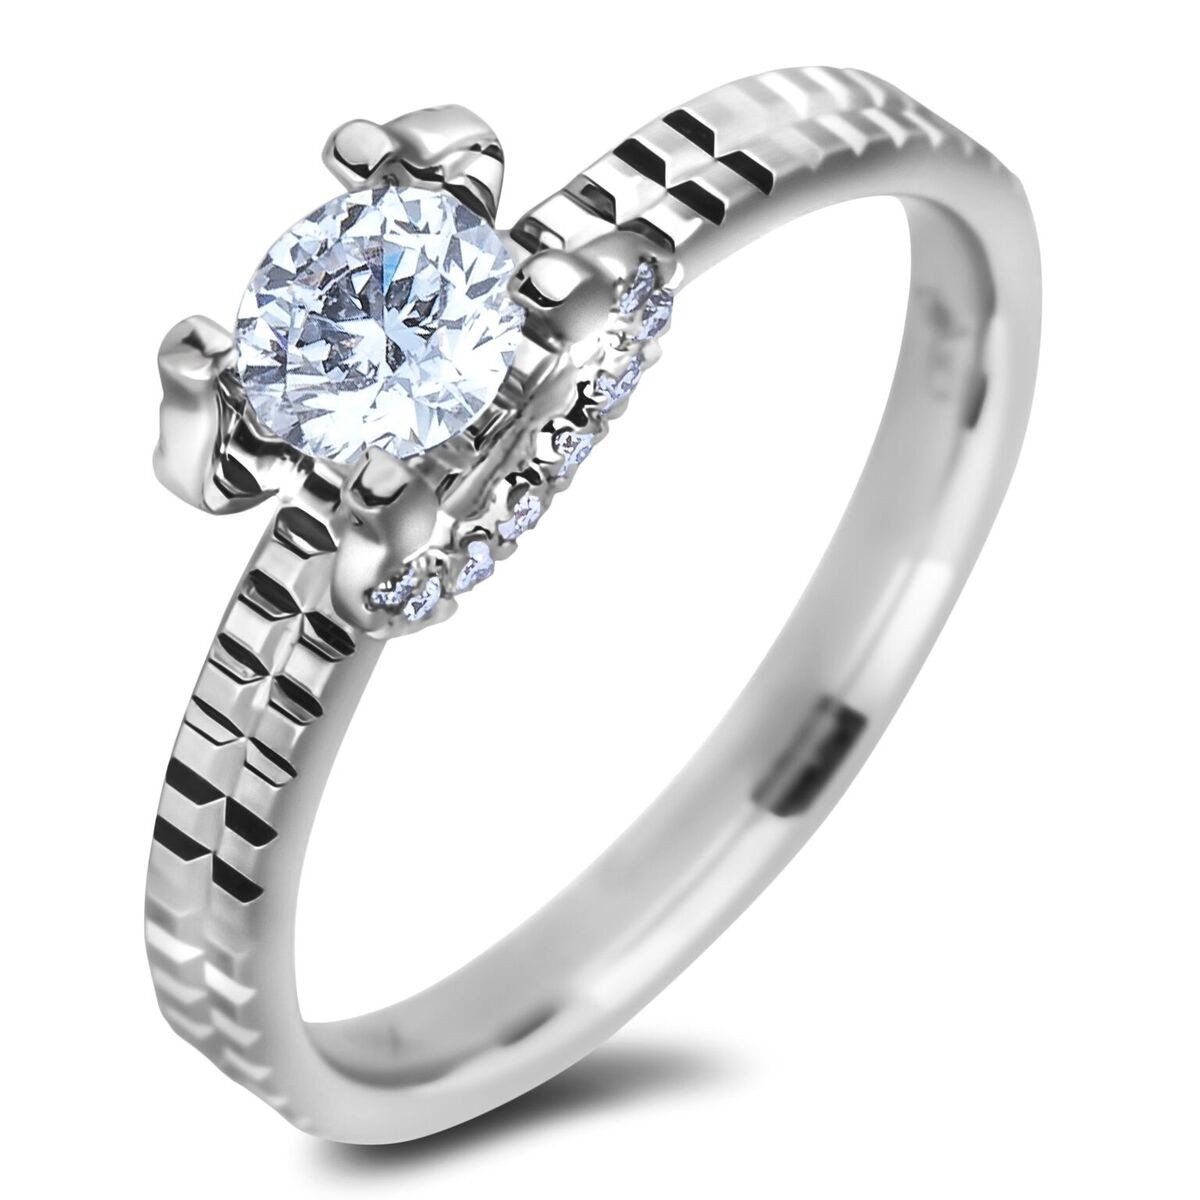 Diamond Engagement Rings AFCR0267050 (Rings)